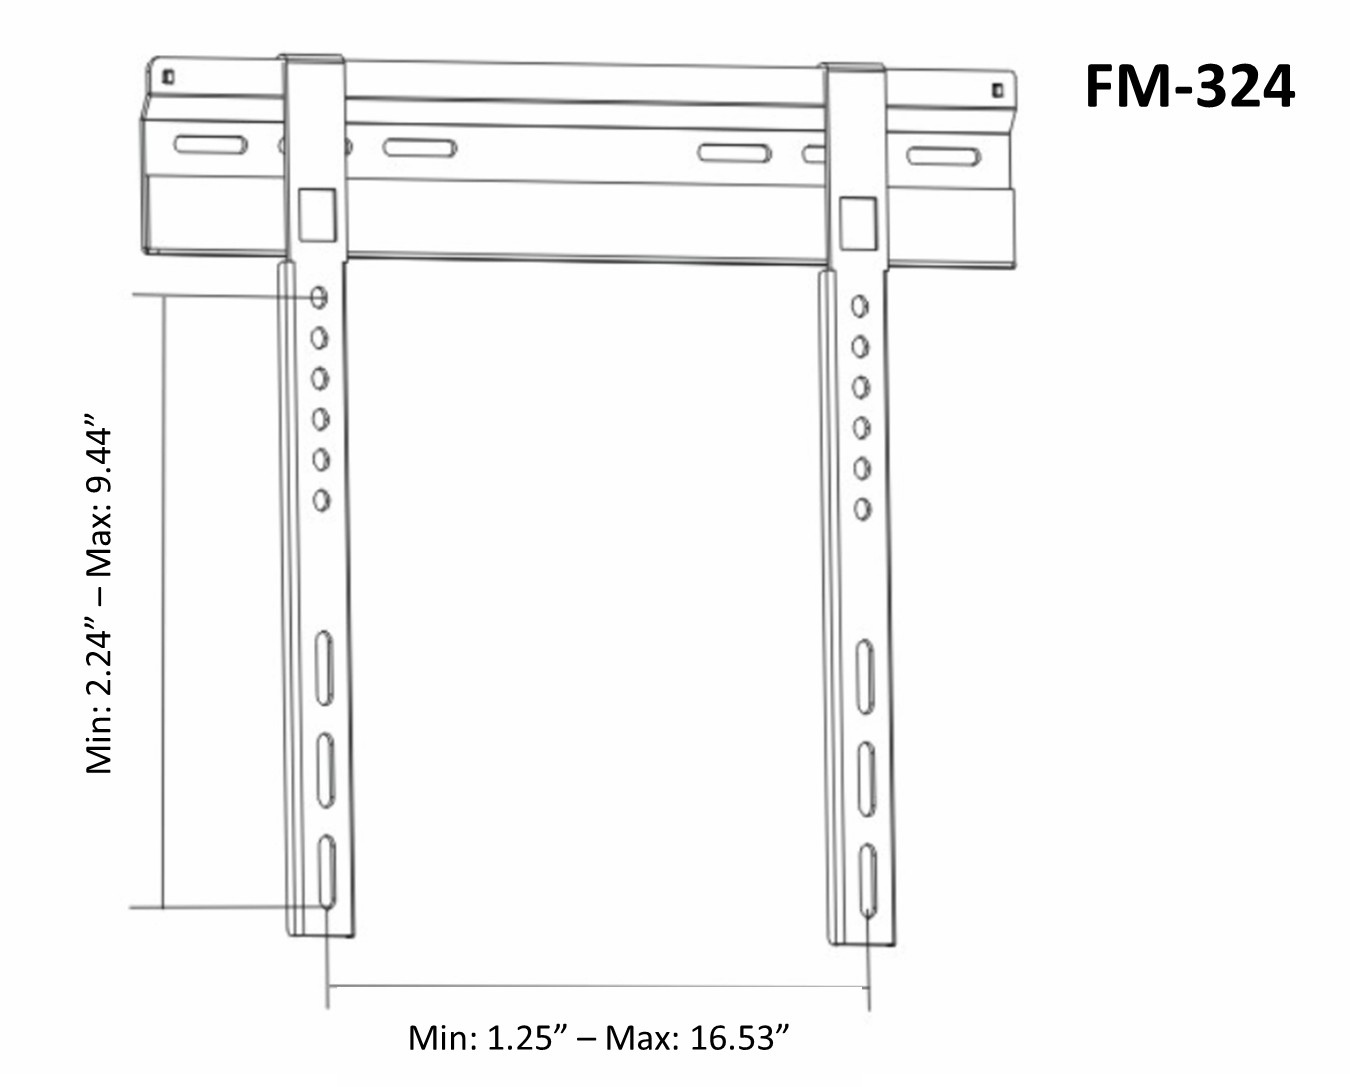 Tv Wall Mount For Plasma Lcd Fixed Flat 23 42 Osd Fm 324 Wiring Diagram